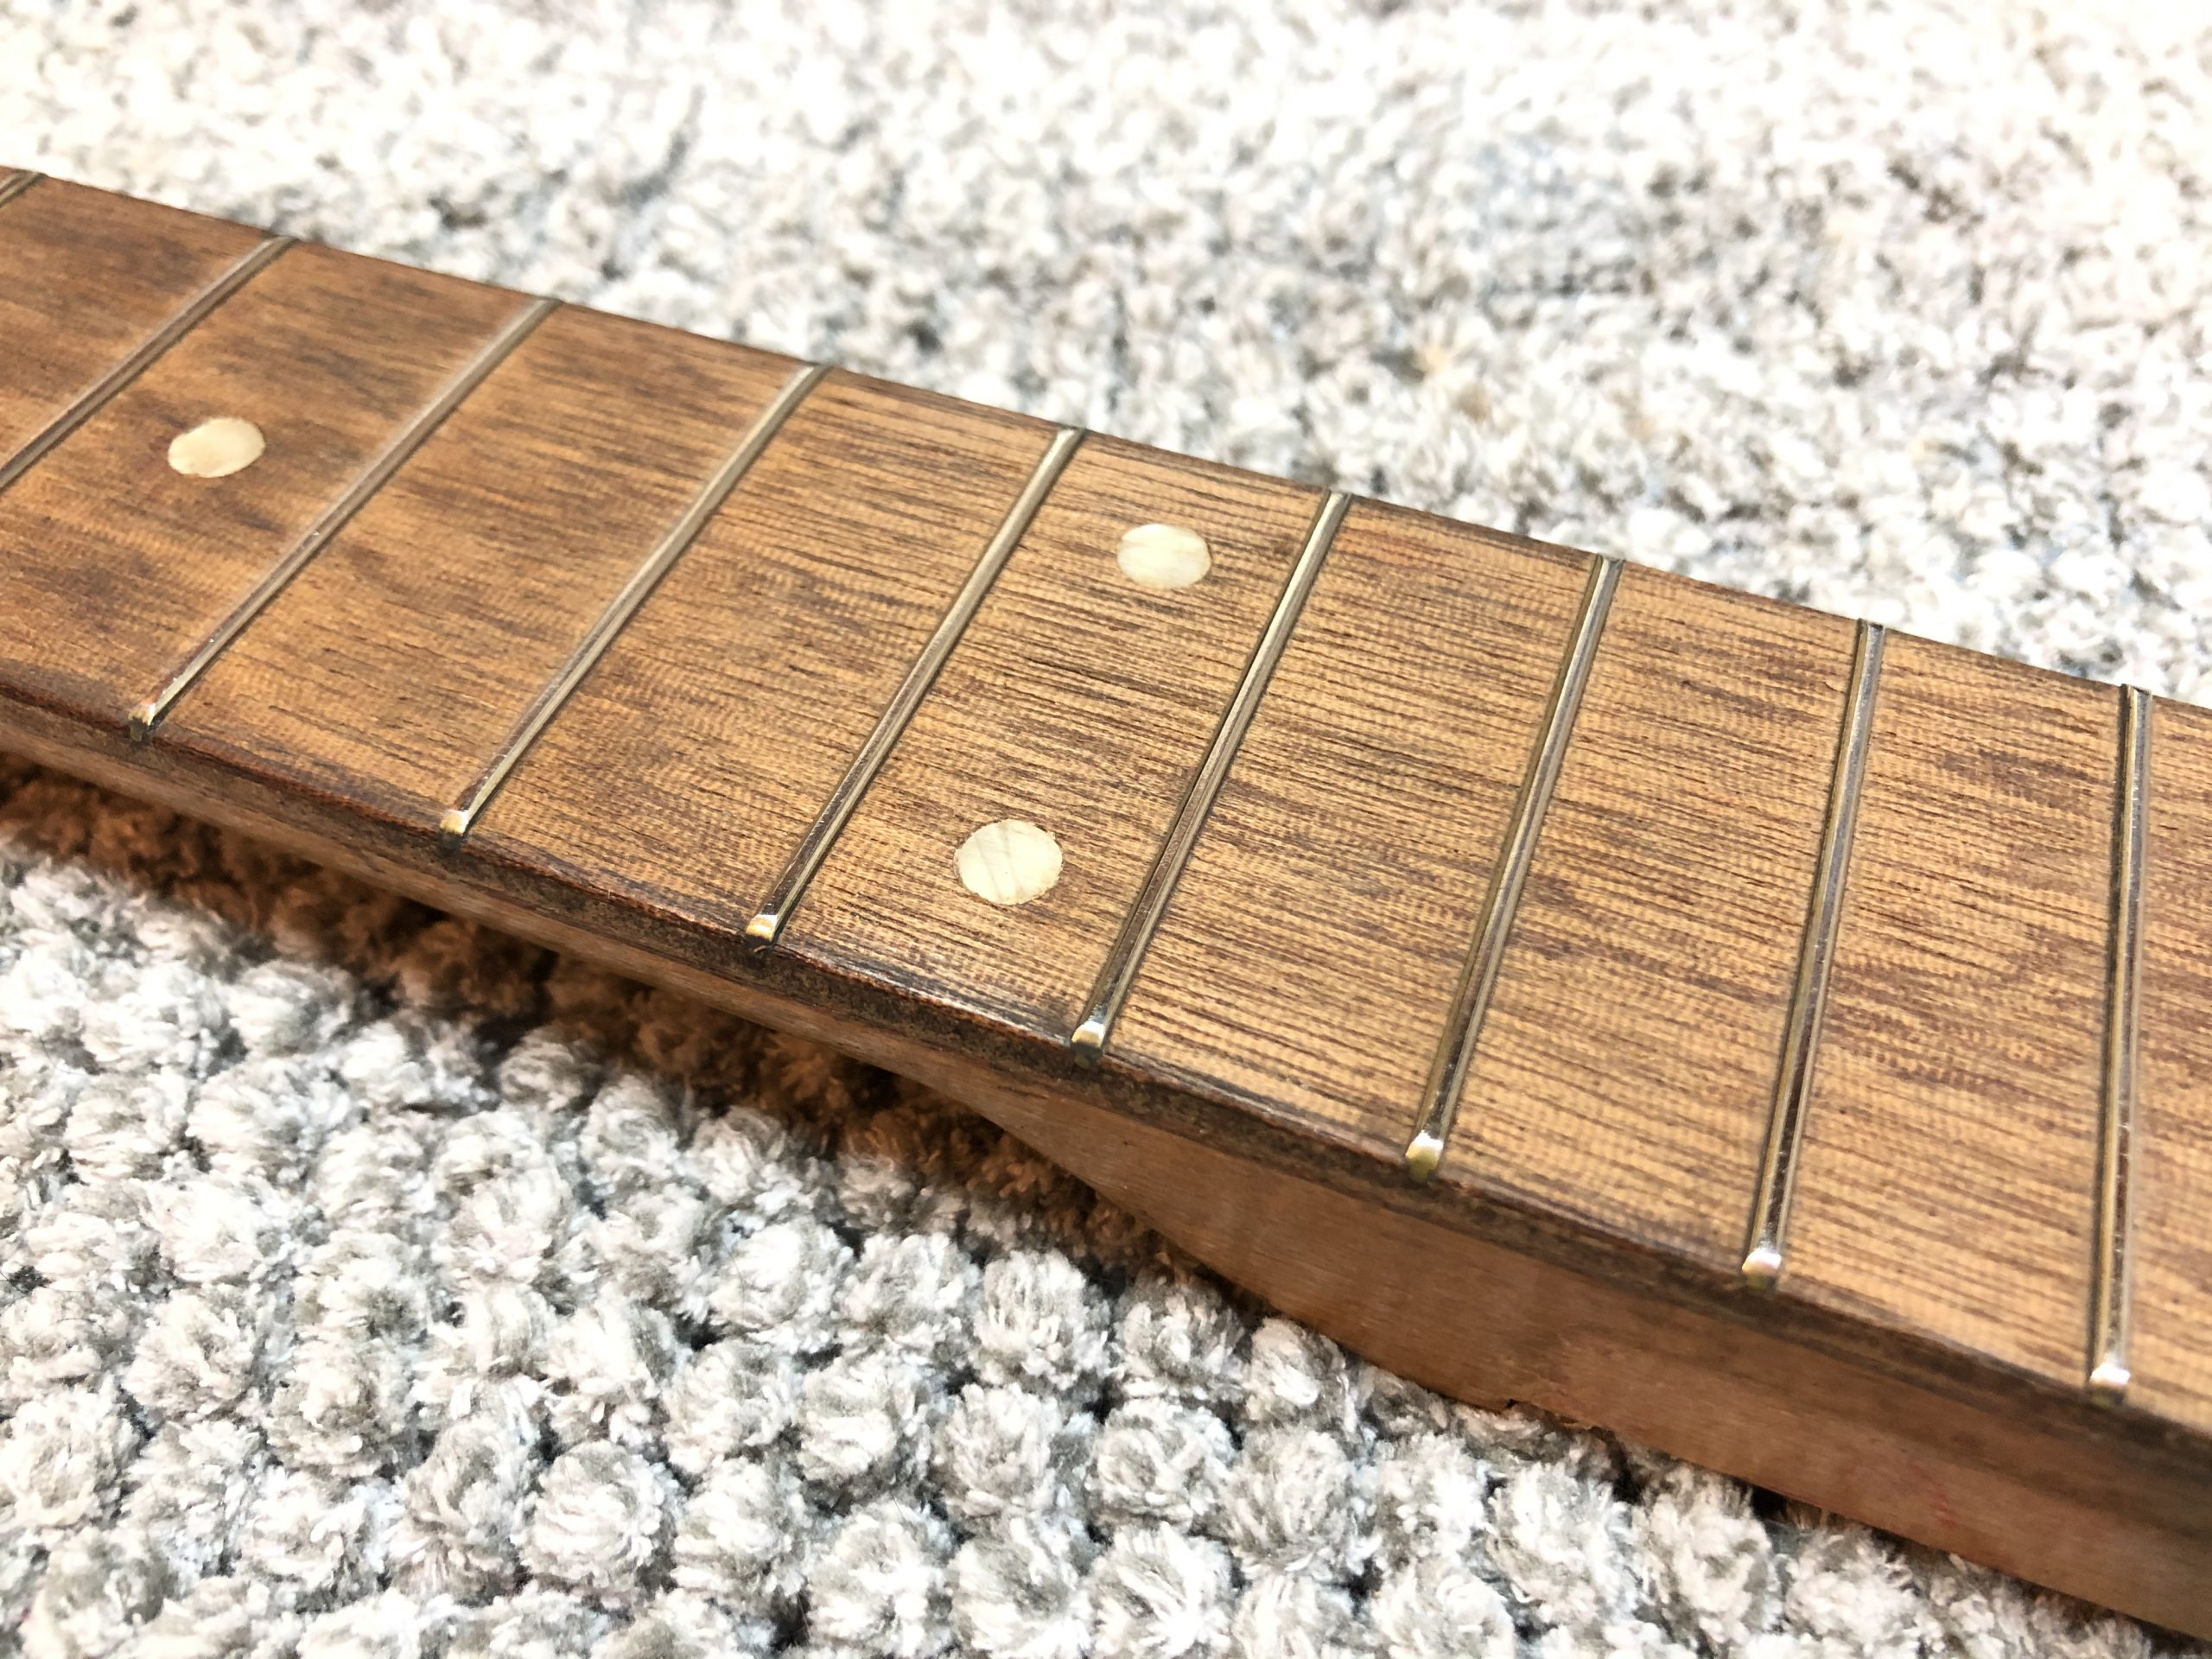 Fretboard ready to be conditioned